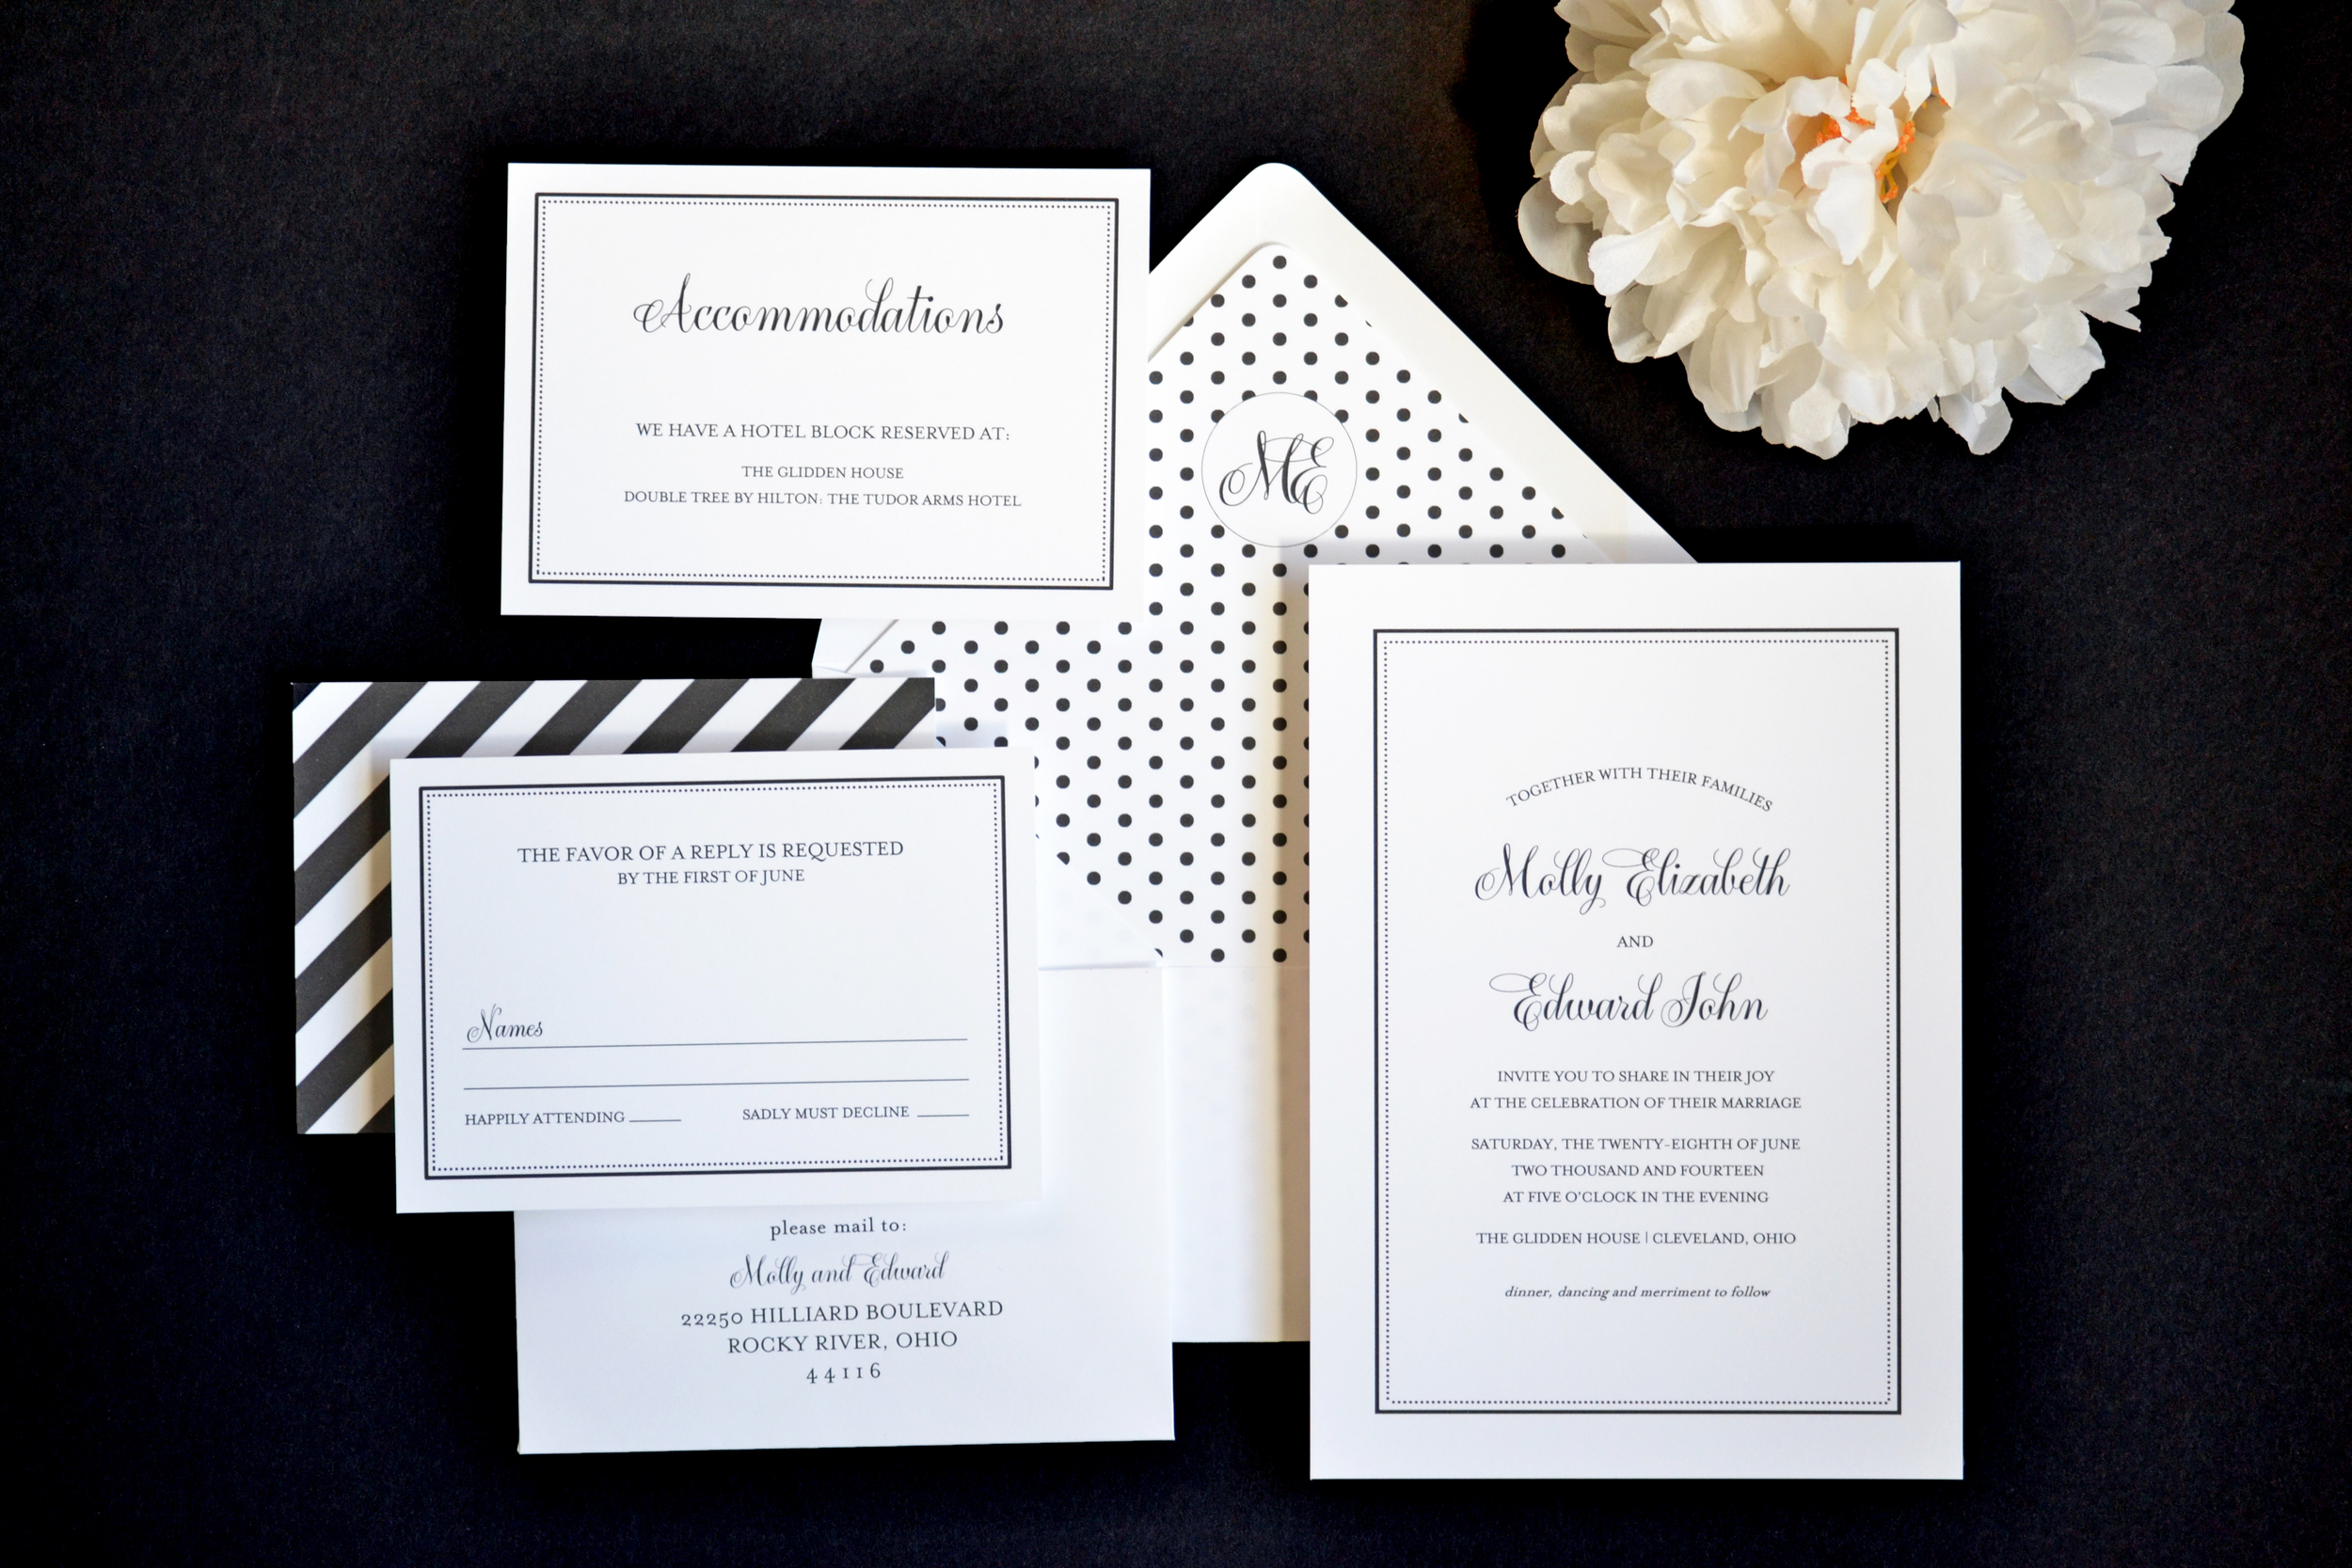 Classic Black and White Wedding Invitations by Simplicity Papers